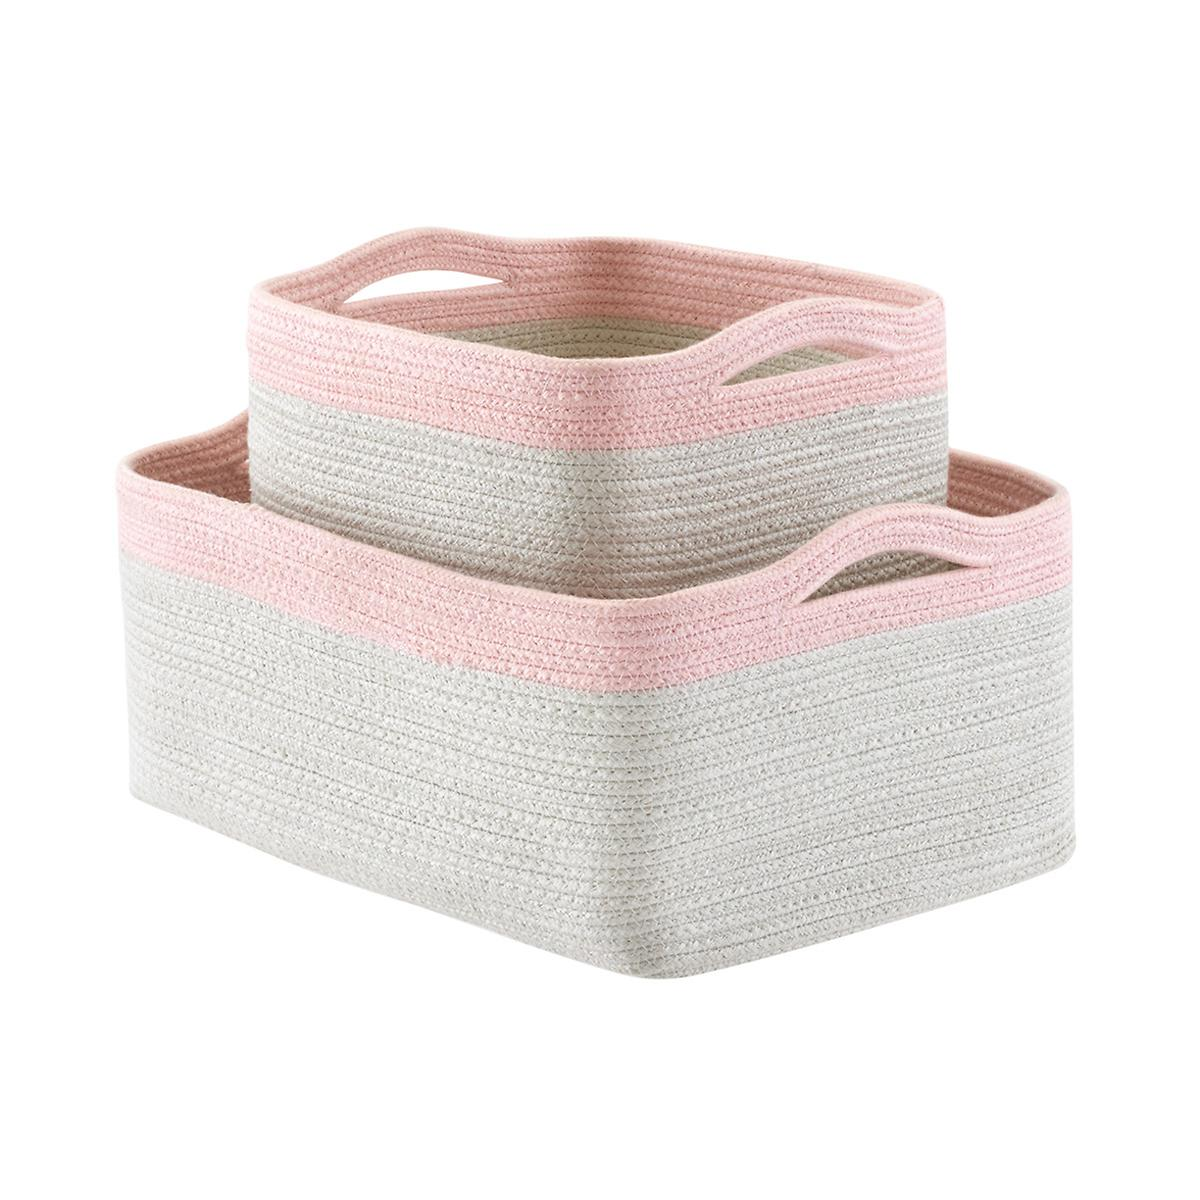 Blush Two-Tone Storage Bins with Handles